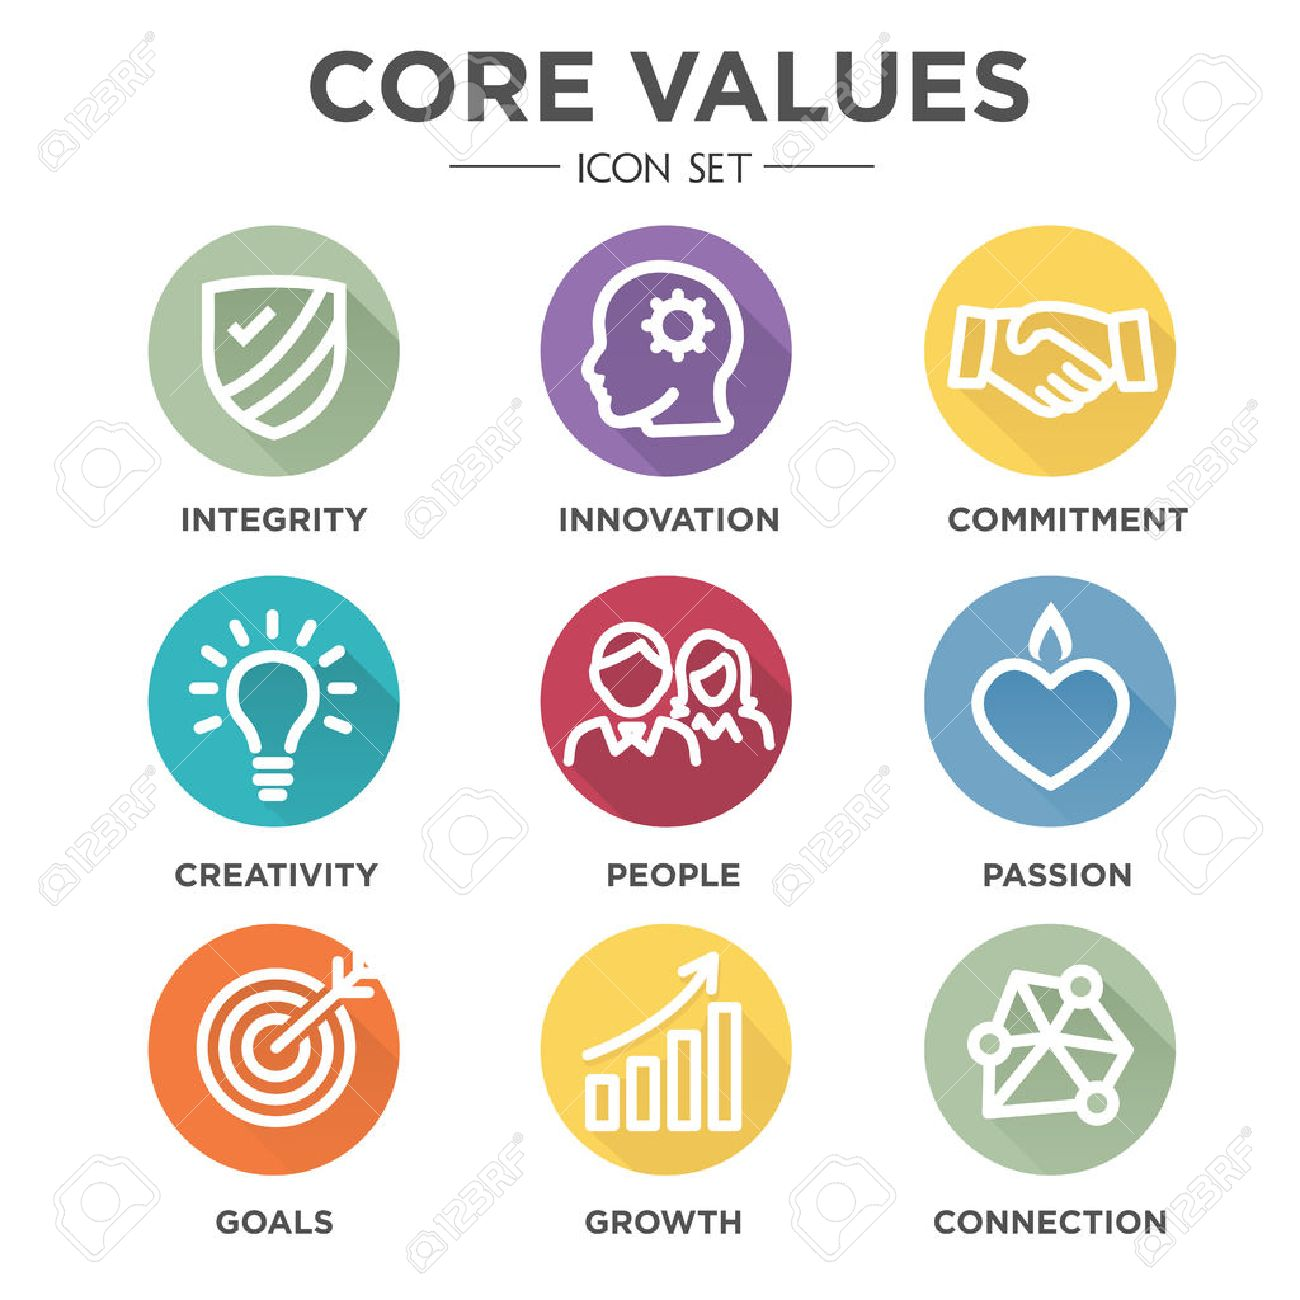 Company Core Values Outline Icons for Websites or Infographics - 57711731